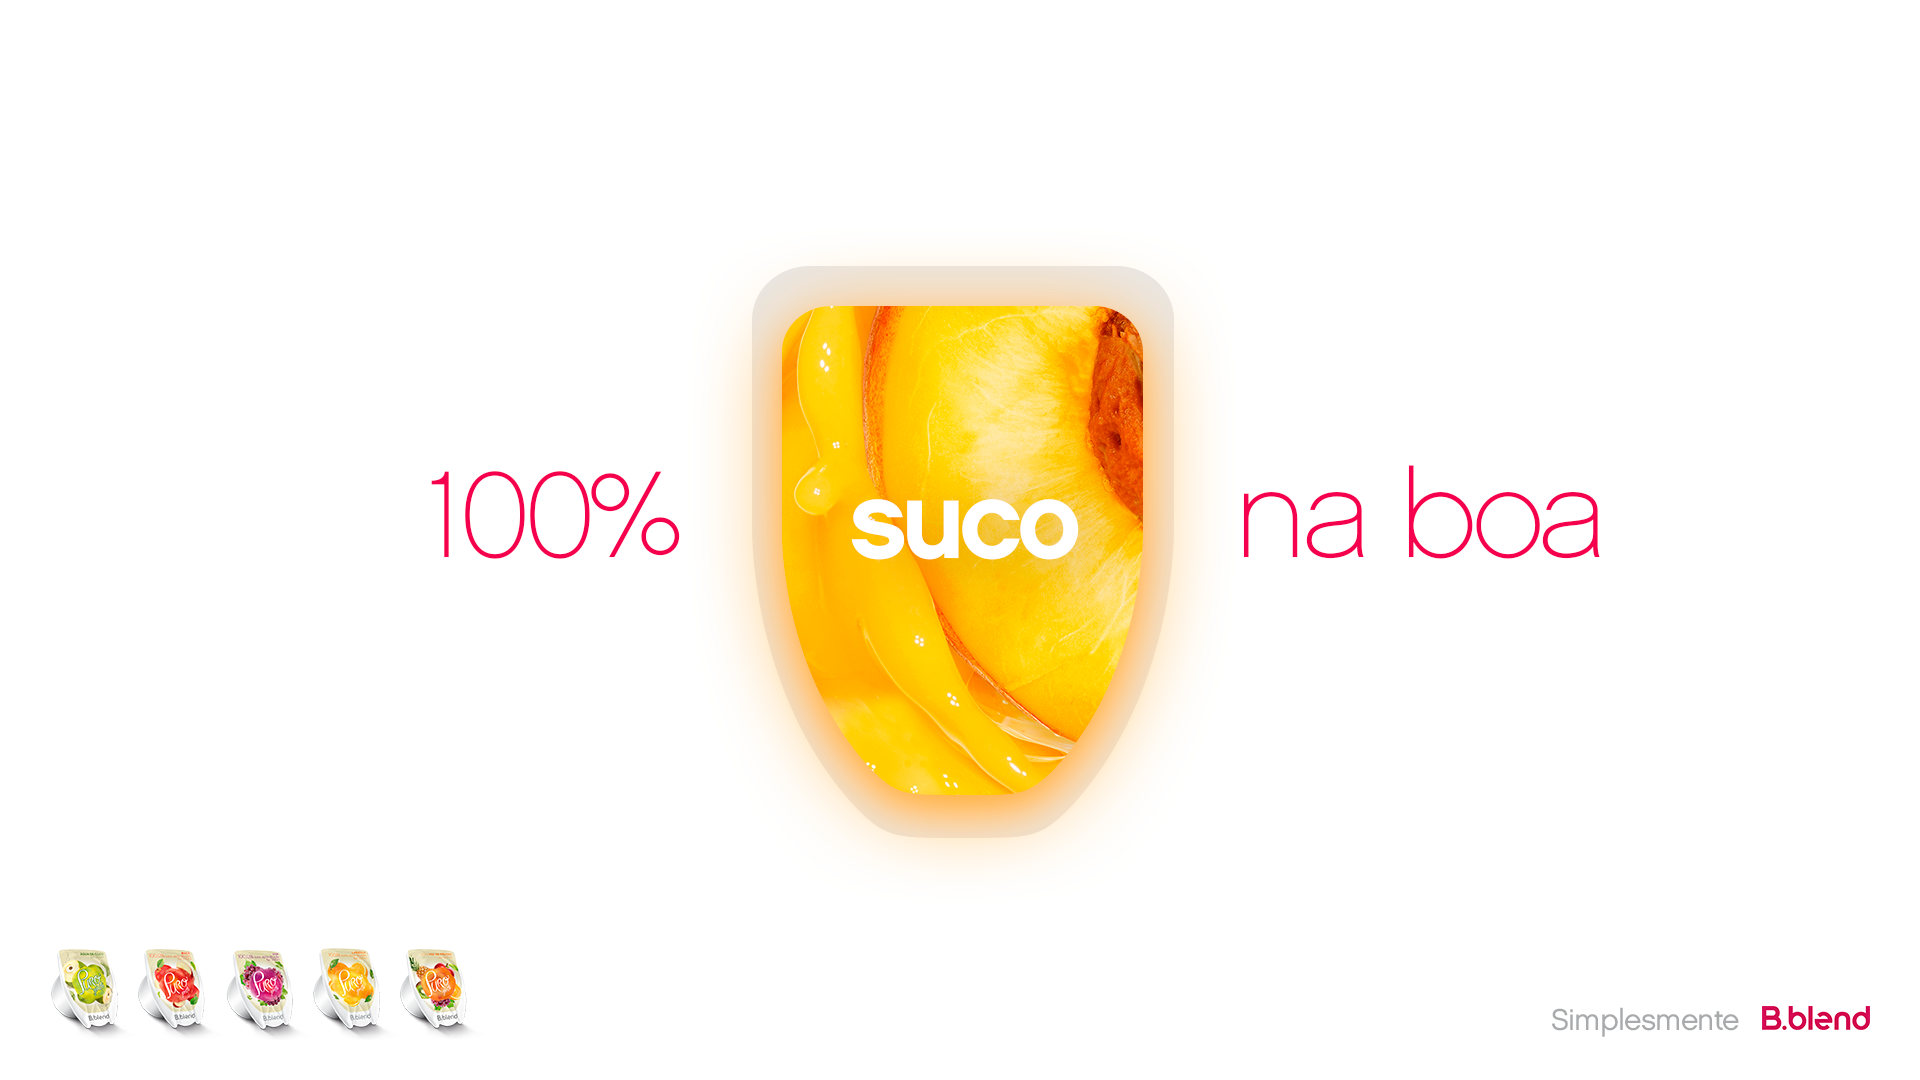 suco.png